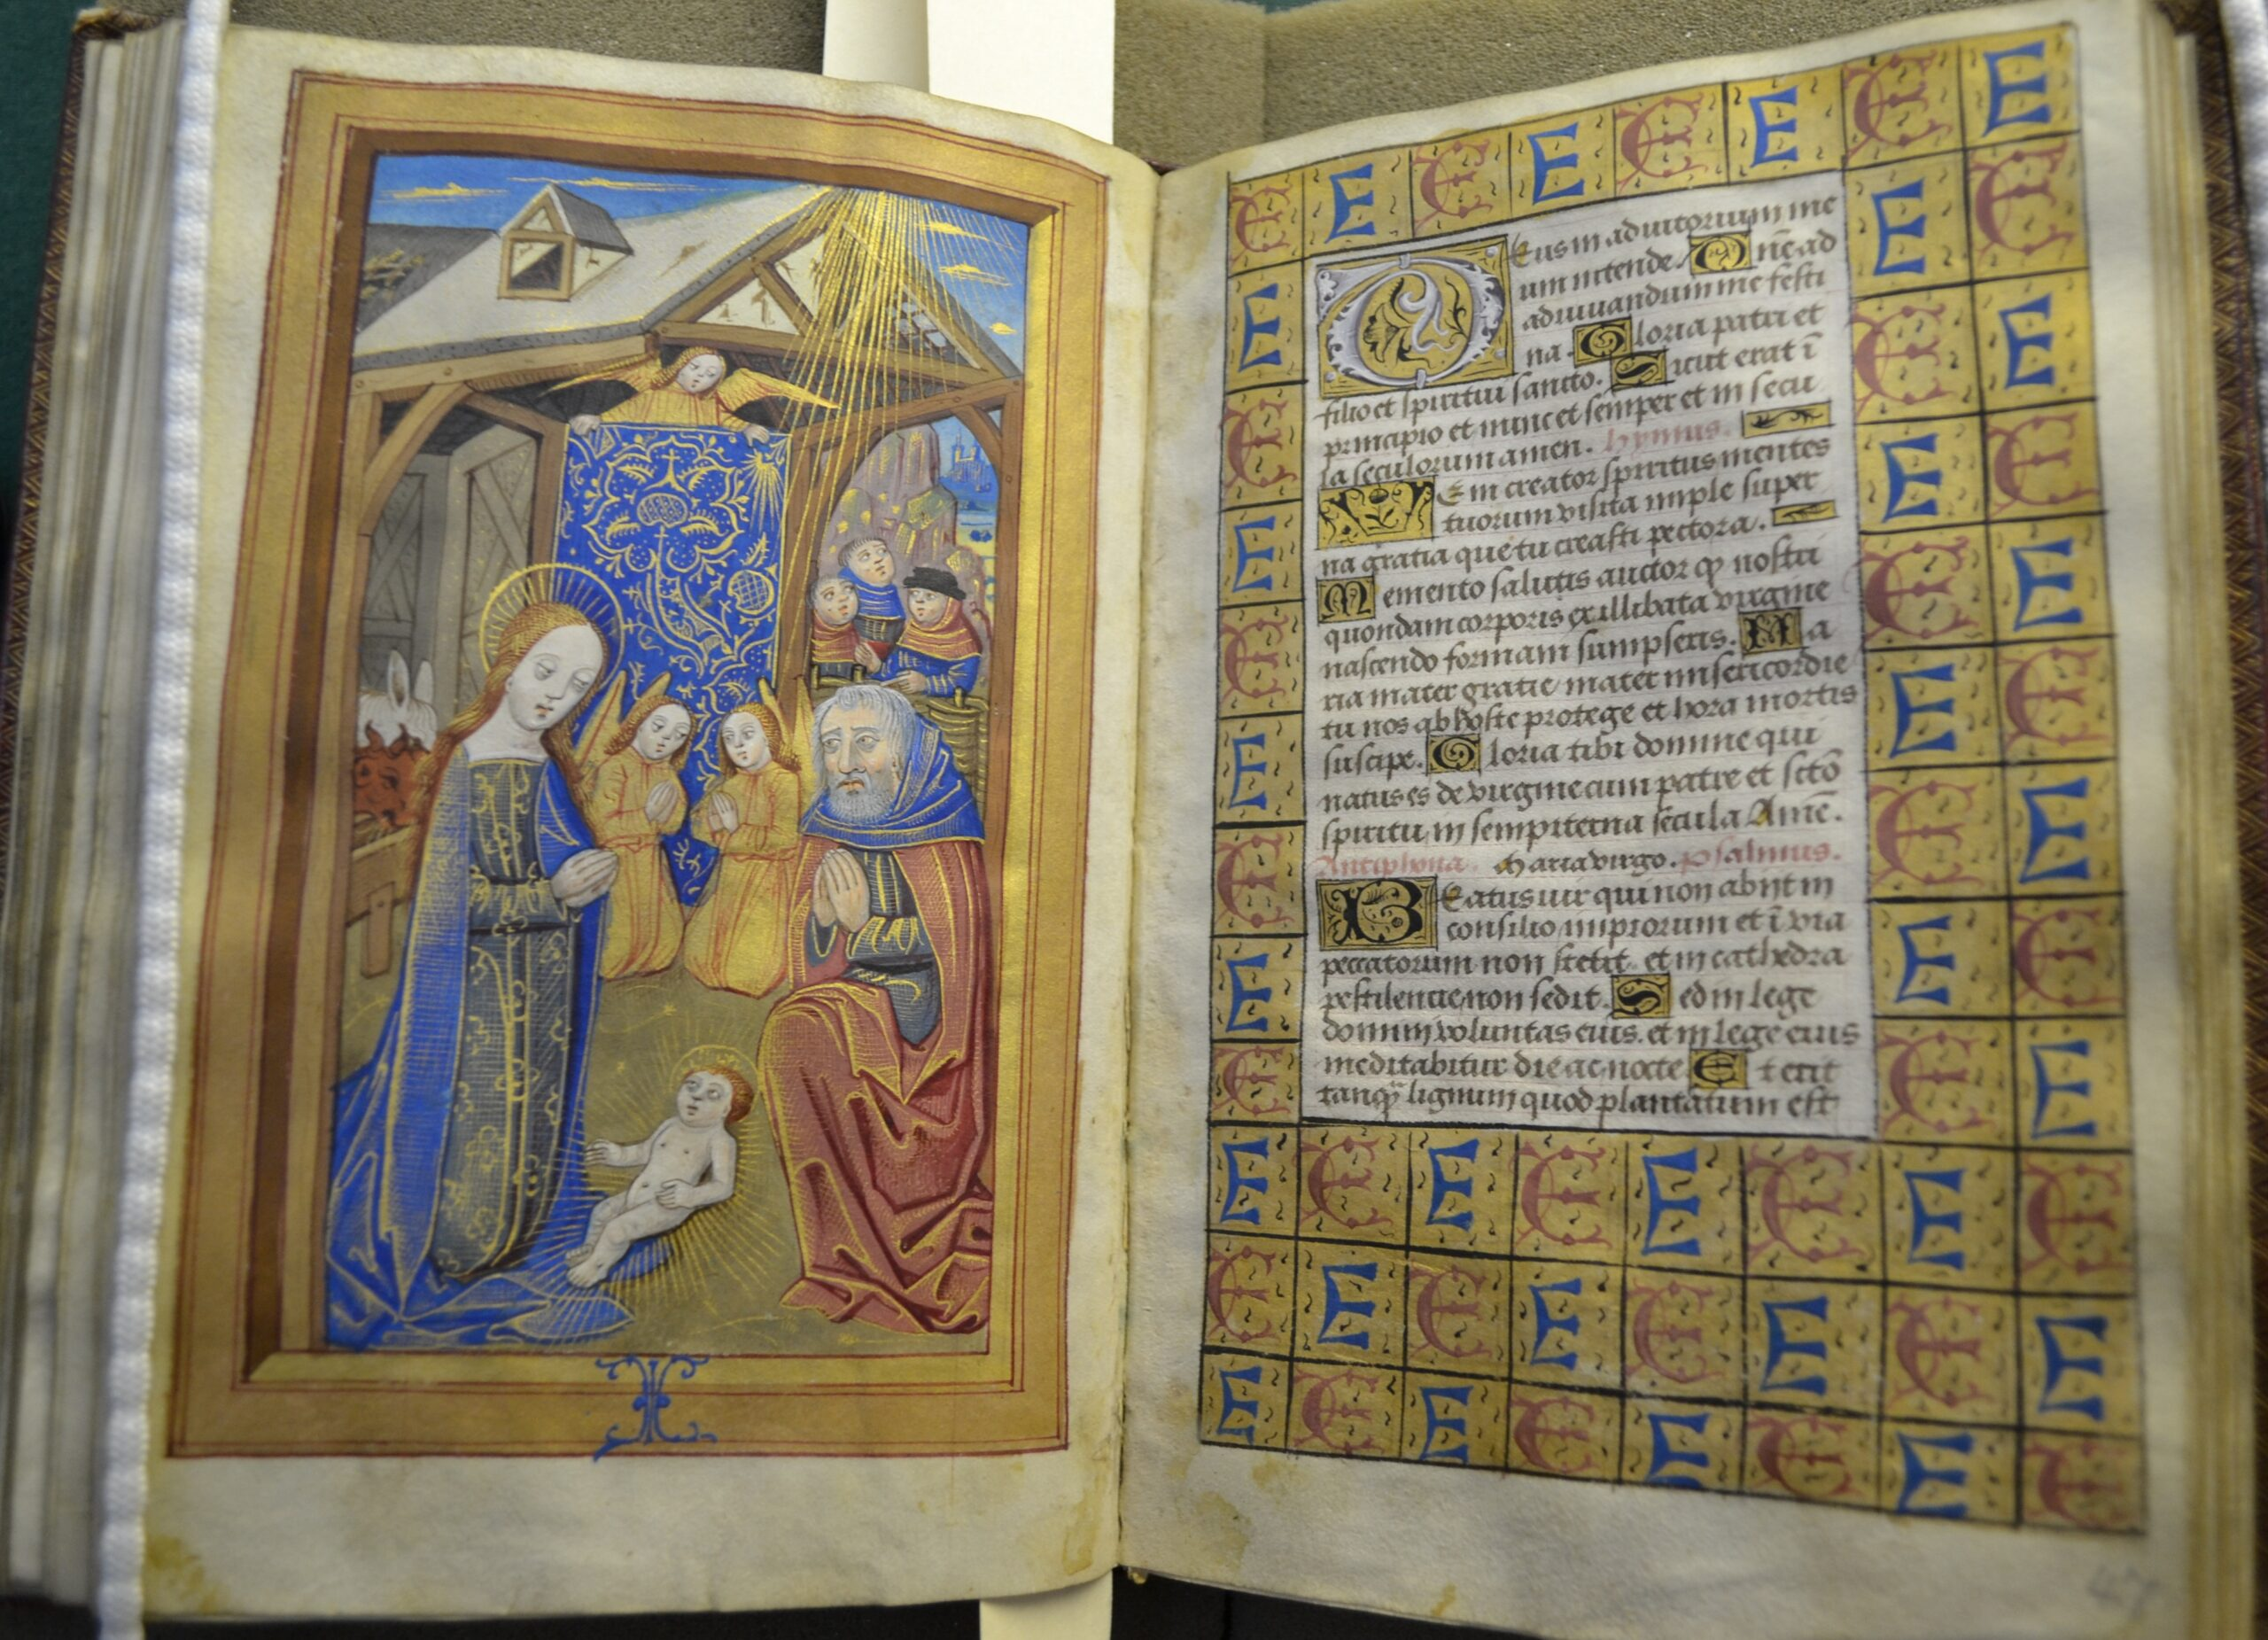 1500 ca Heures a l'usage de Rouen Society of Antiquaries of London SAL MS 13 62v-63 IEHAN DVFOVR and MARGUERITE AVTIN